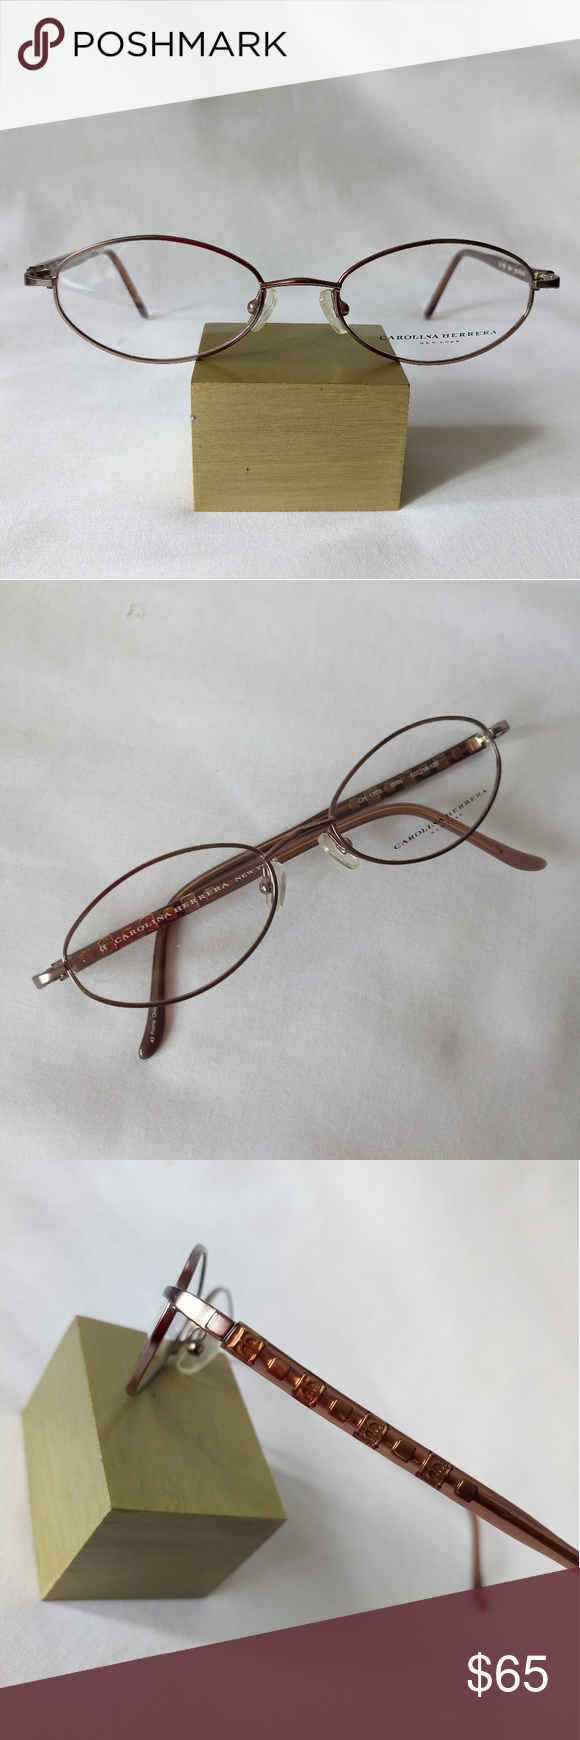 386565827d0e Carolina Herrera Eyeglasses Frame 100% Authentic New without case Comes as  seen in pictures Size